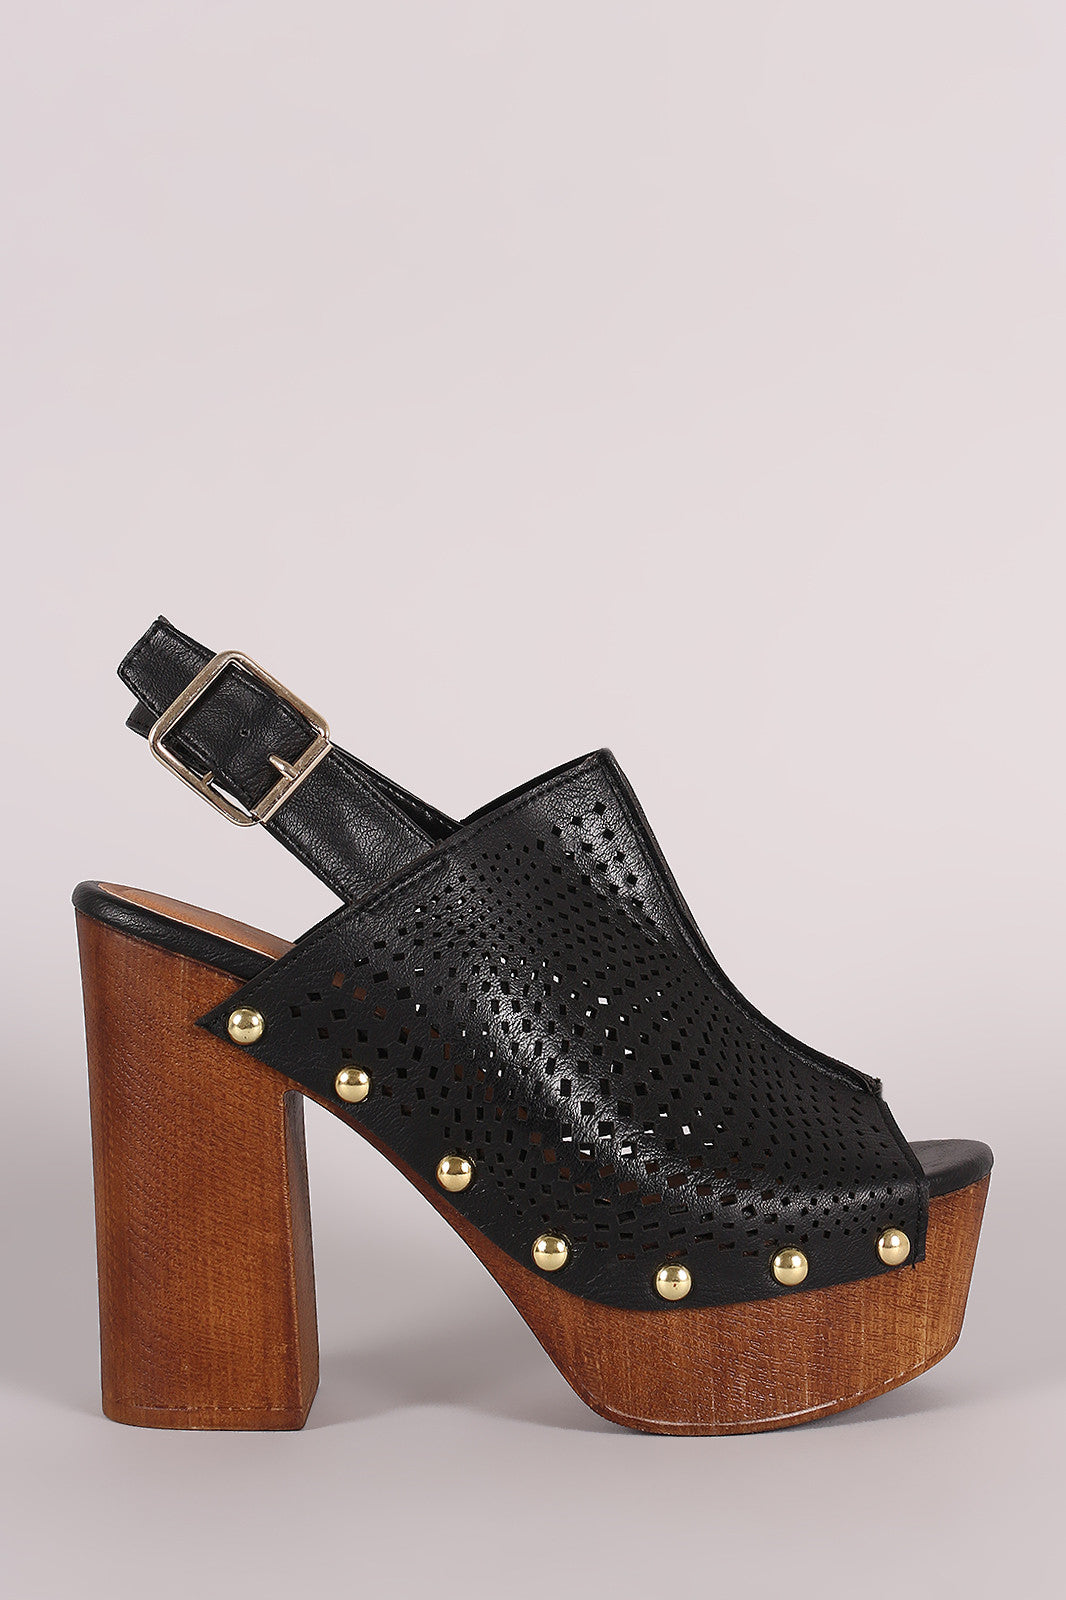 Qupid Perforated Slingback Studded Chunky Platform Mule Heel - Thick 'N' Curvy Shop - 7